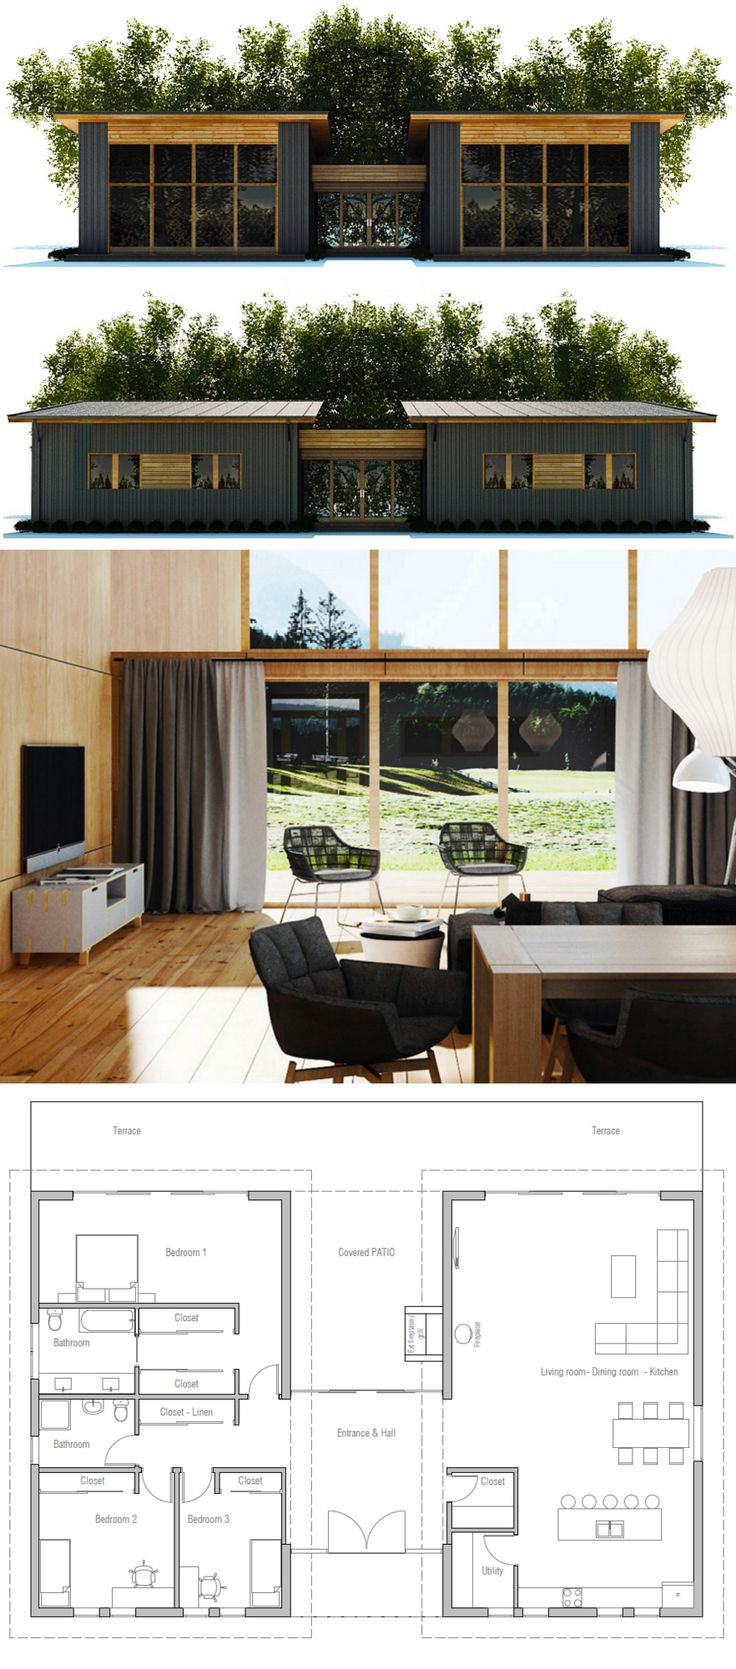 Super 17 Best Ideas About Small Houses On Pinterest Small Homes Tiny Largest Home Design Picture Inspirations Pitcheantrous